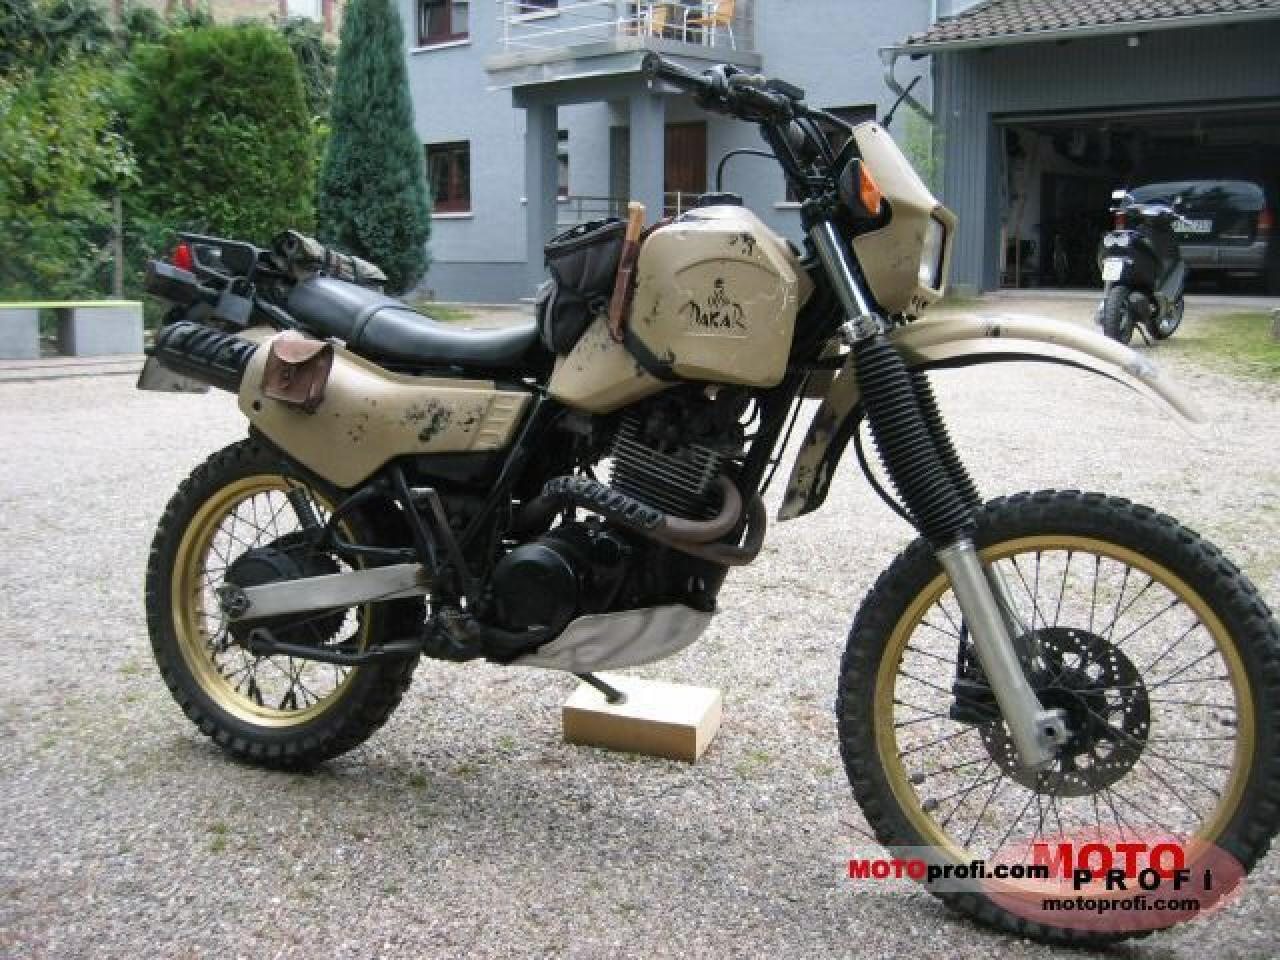 1987 yamaha xt 600 reduced effect moto zombdrive com. Black Bedroom Furniture Sets. Home Design Ideas